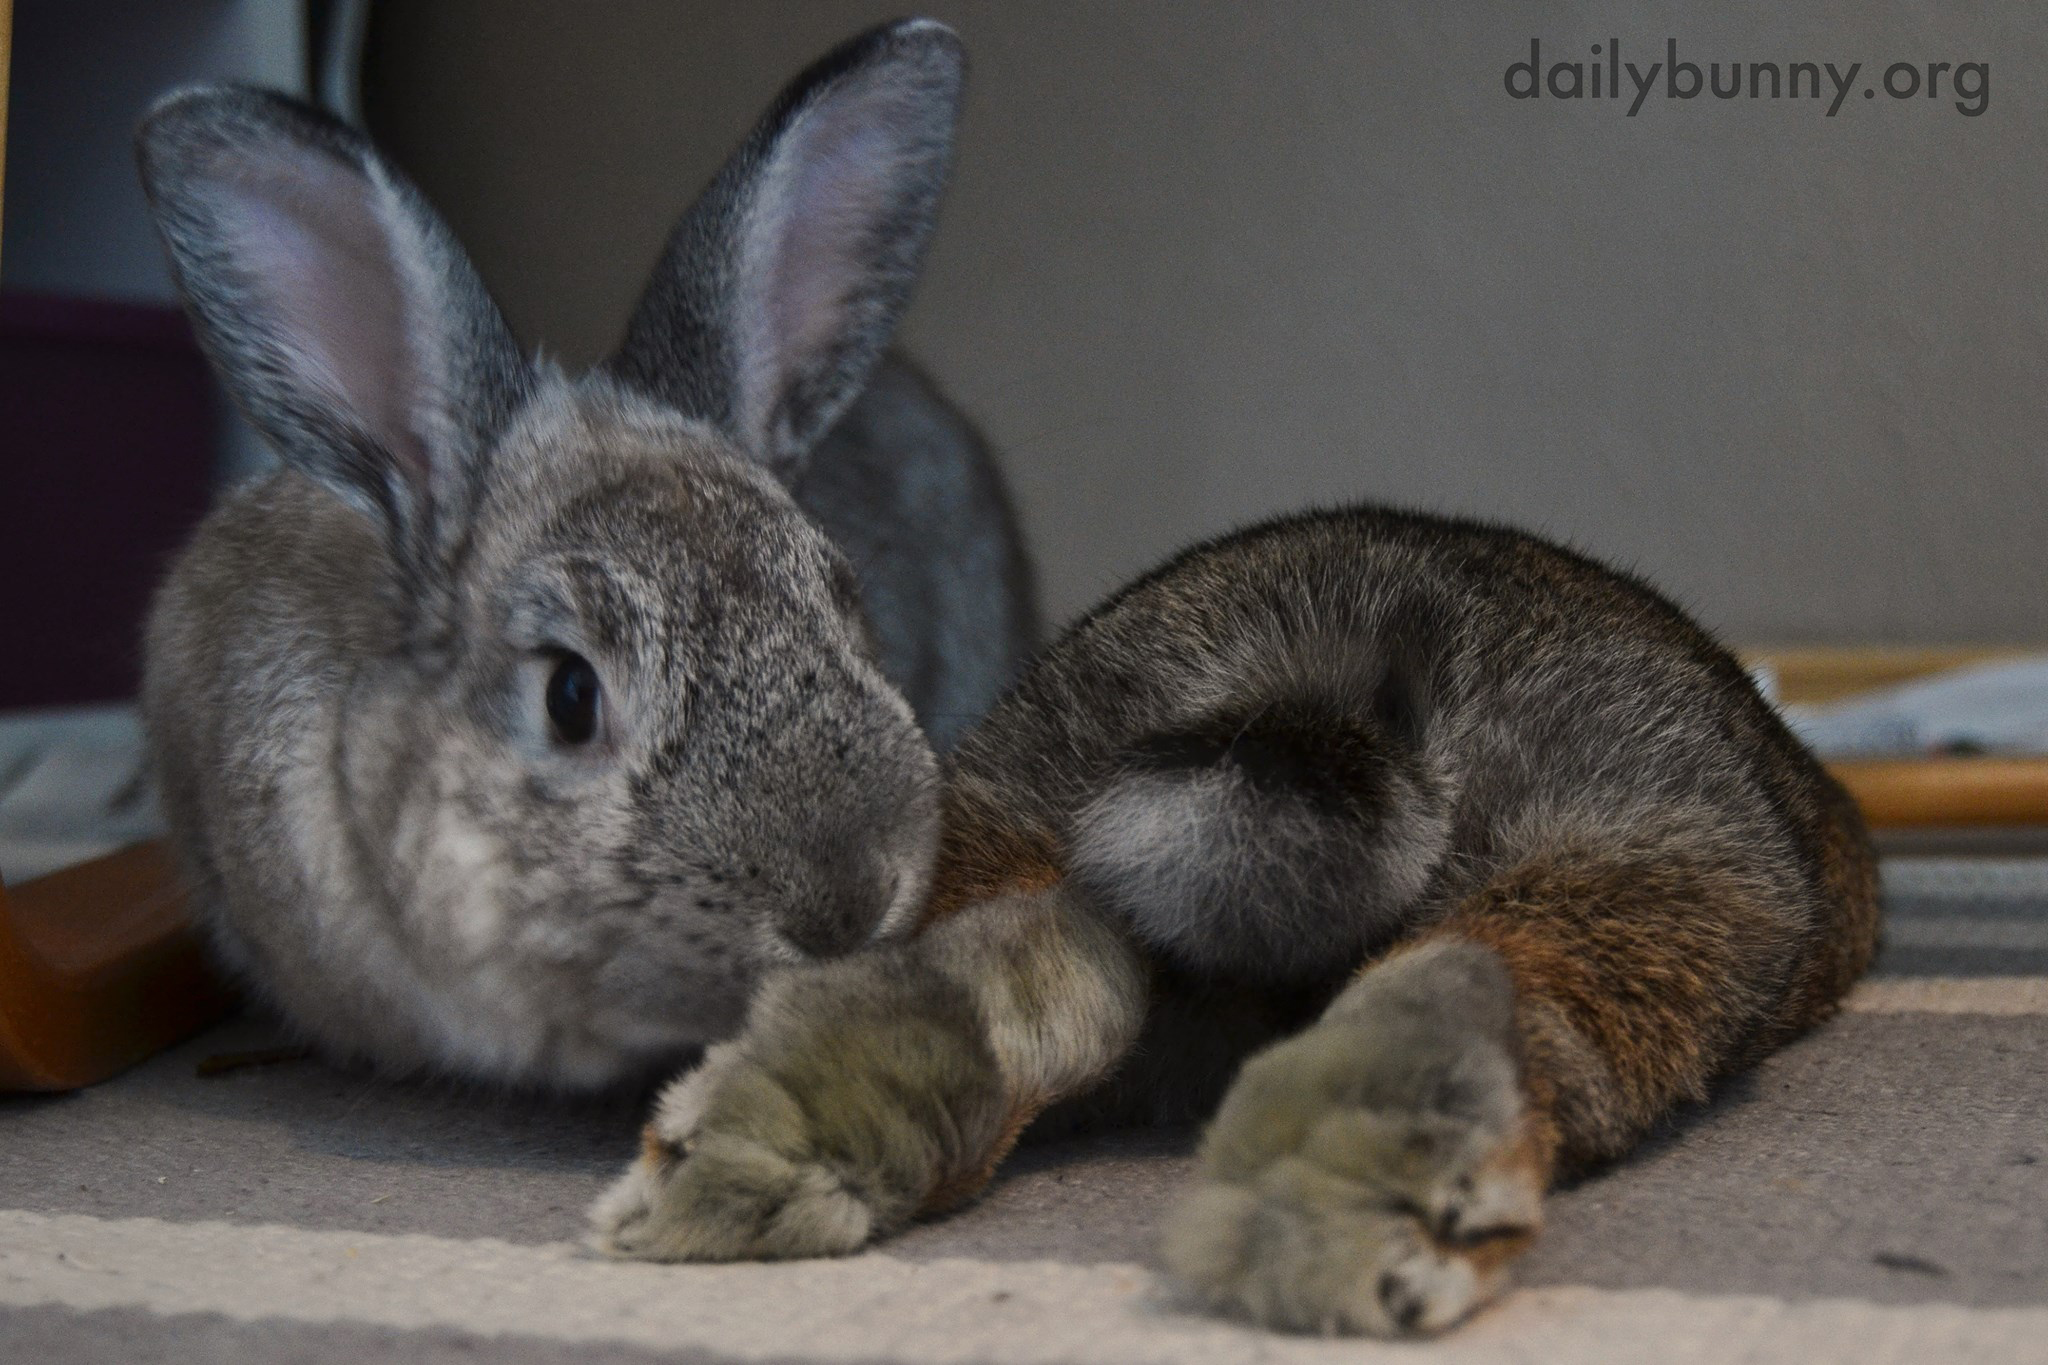 Your Feet Smell Good - Have You Been Stepping on the Parsley Again?